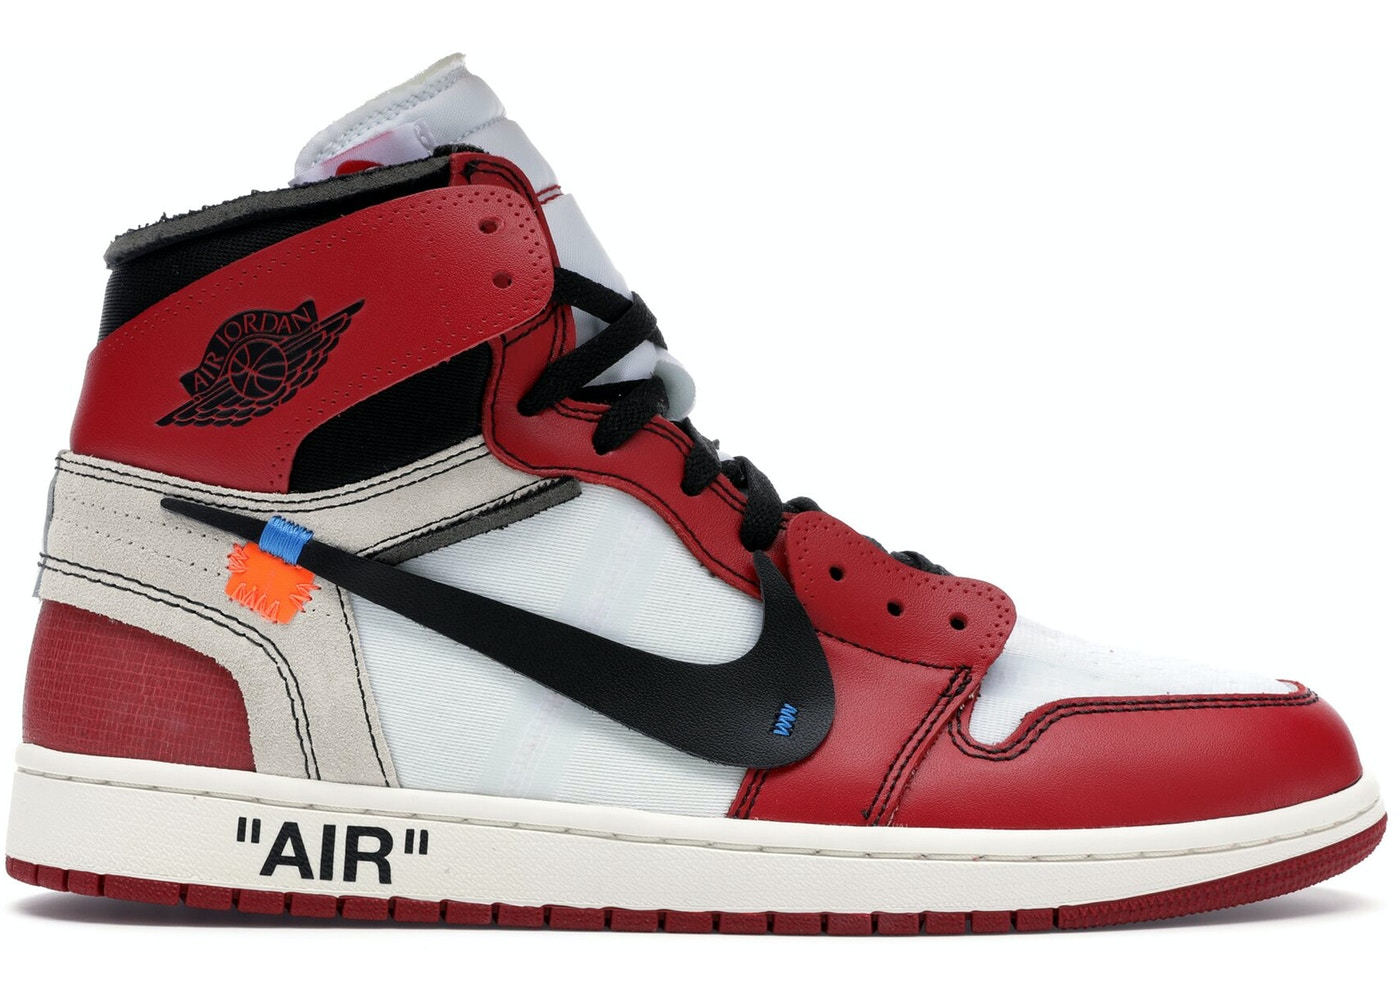 0d0b03098826 Jordan 1 Retro High Off-White Chicago - AA3834-101